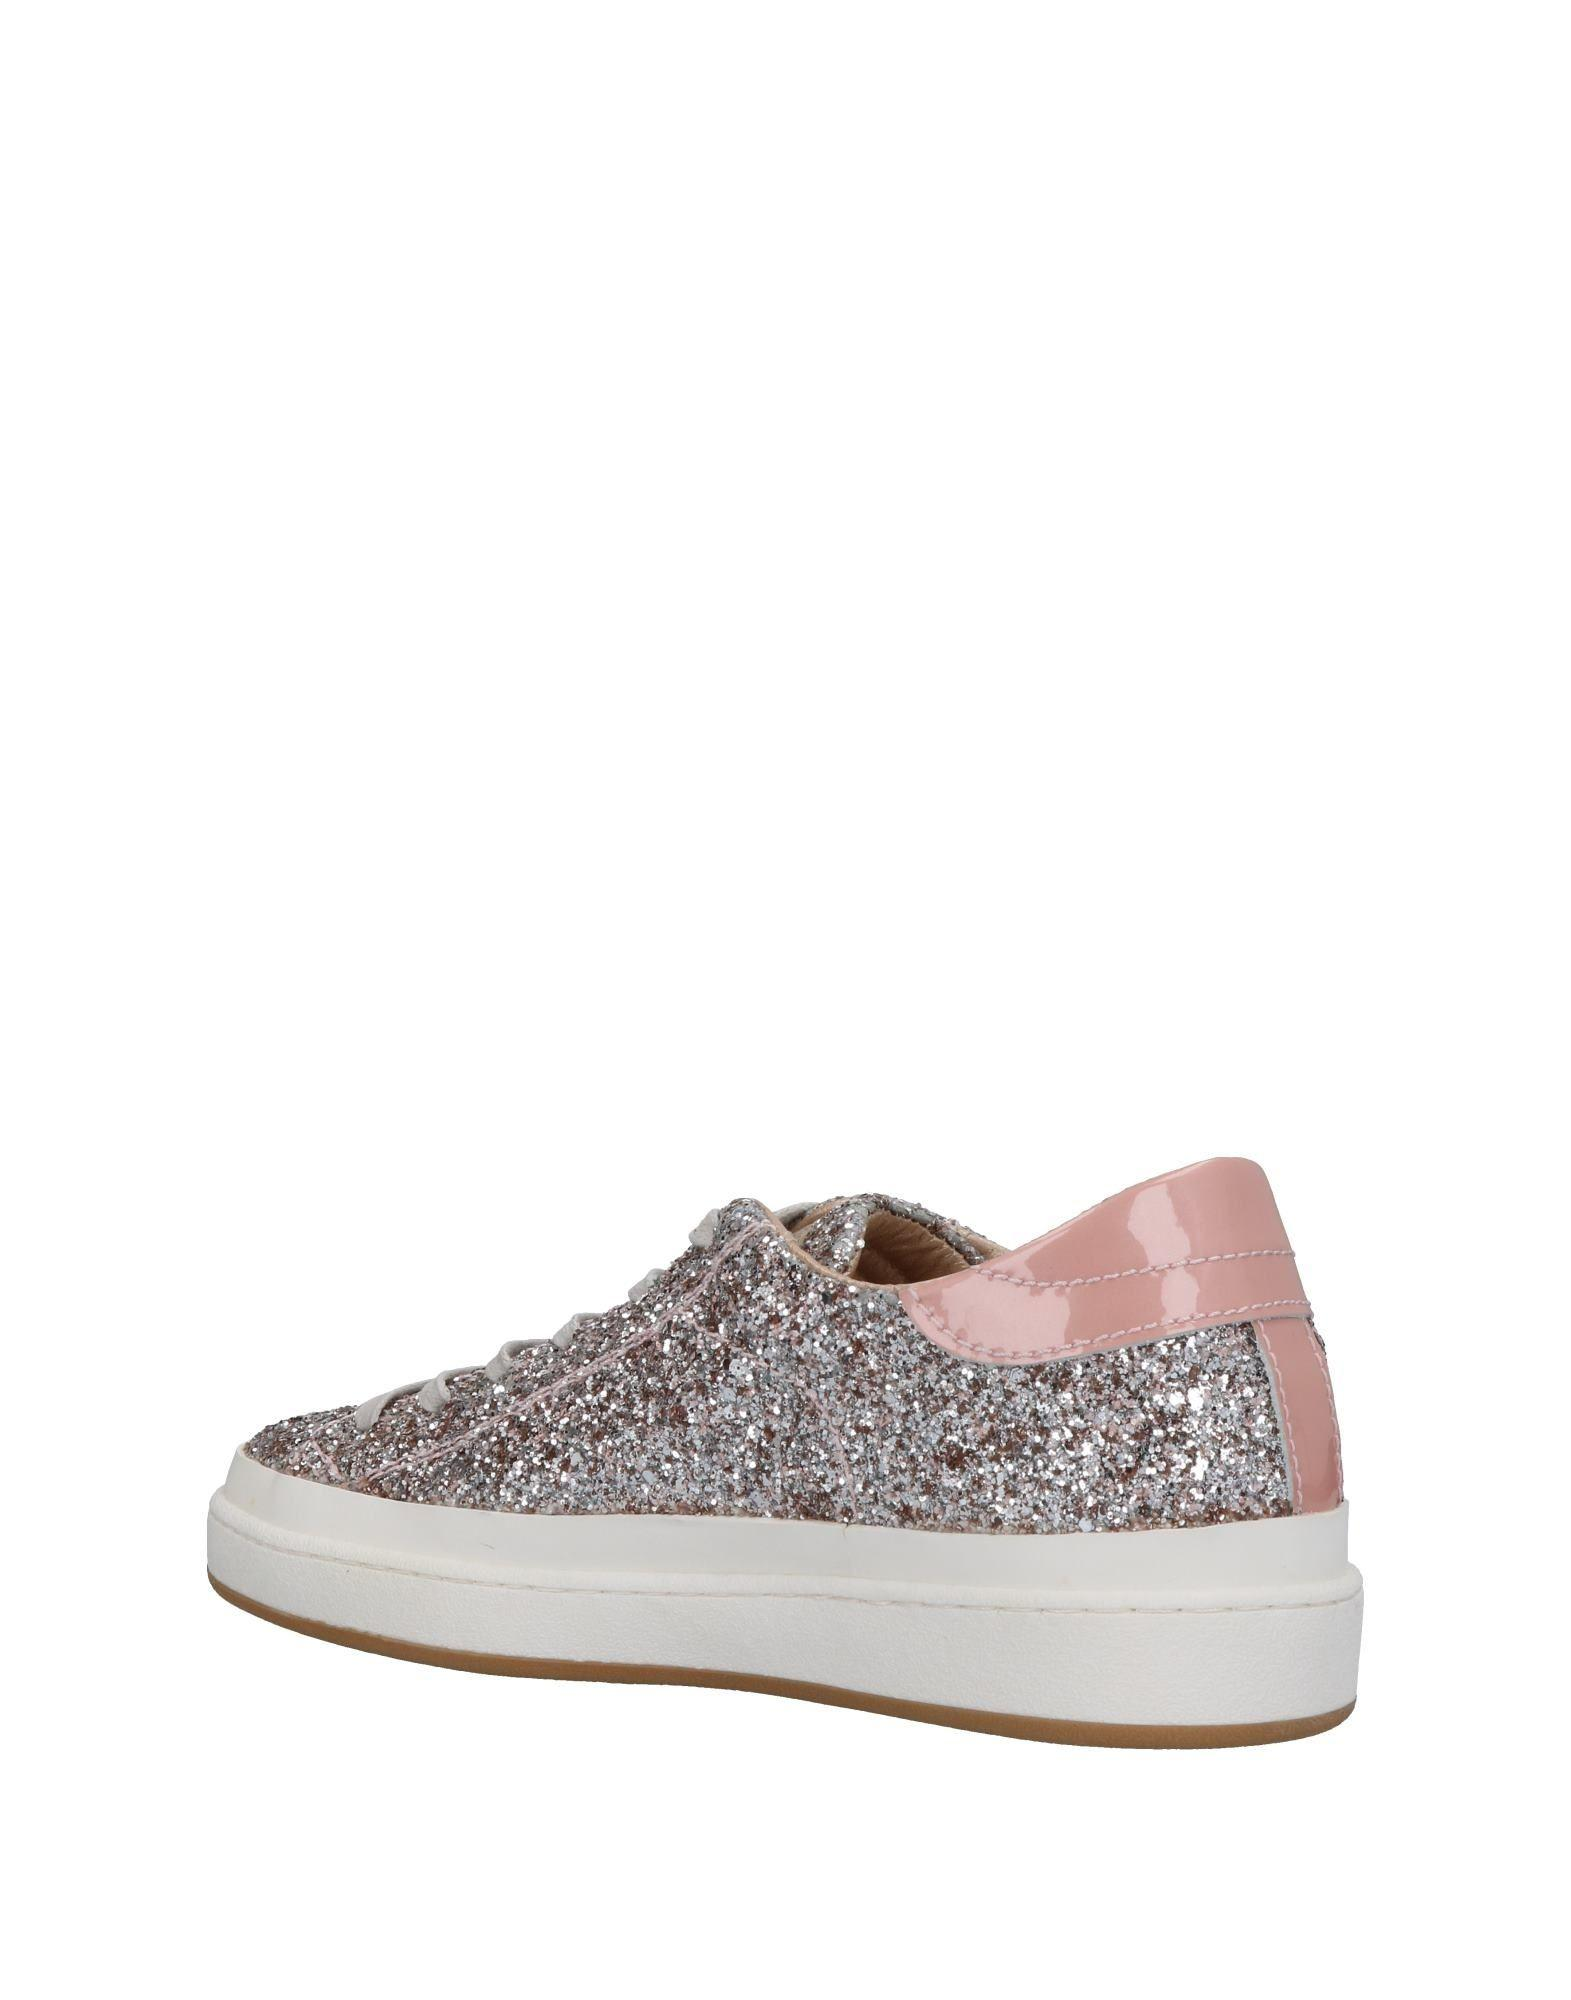 Philippe Model Low-tops & Sneakers in Pink